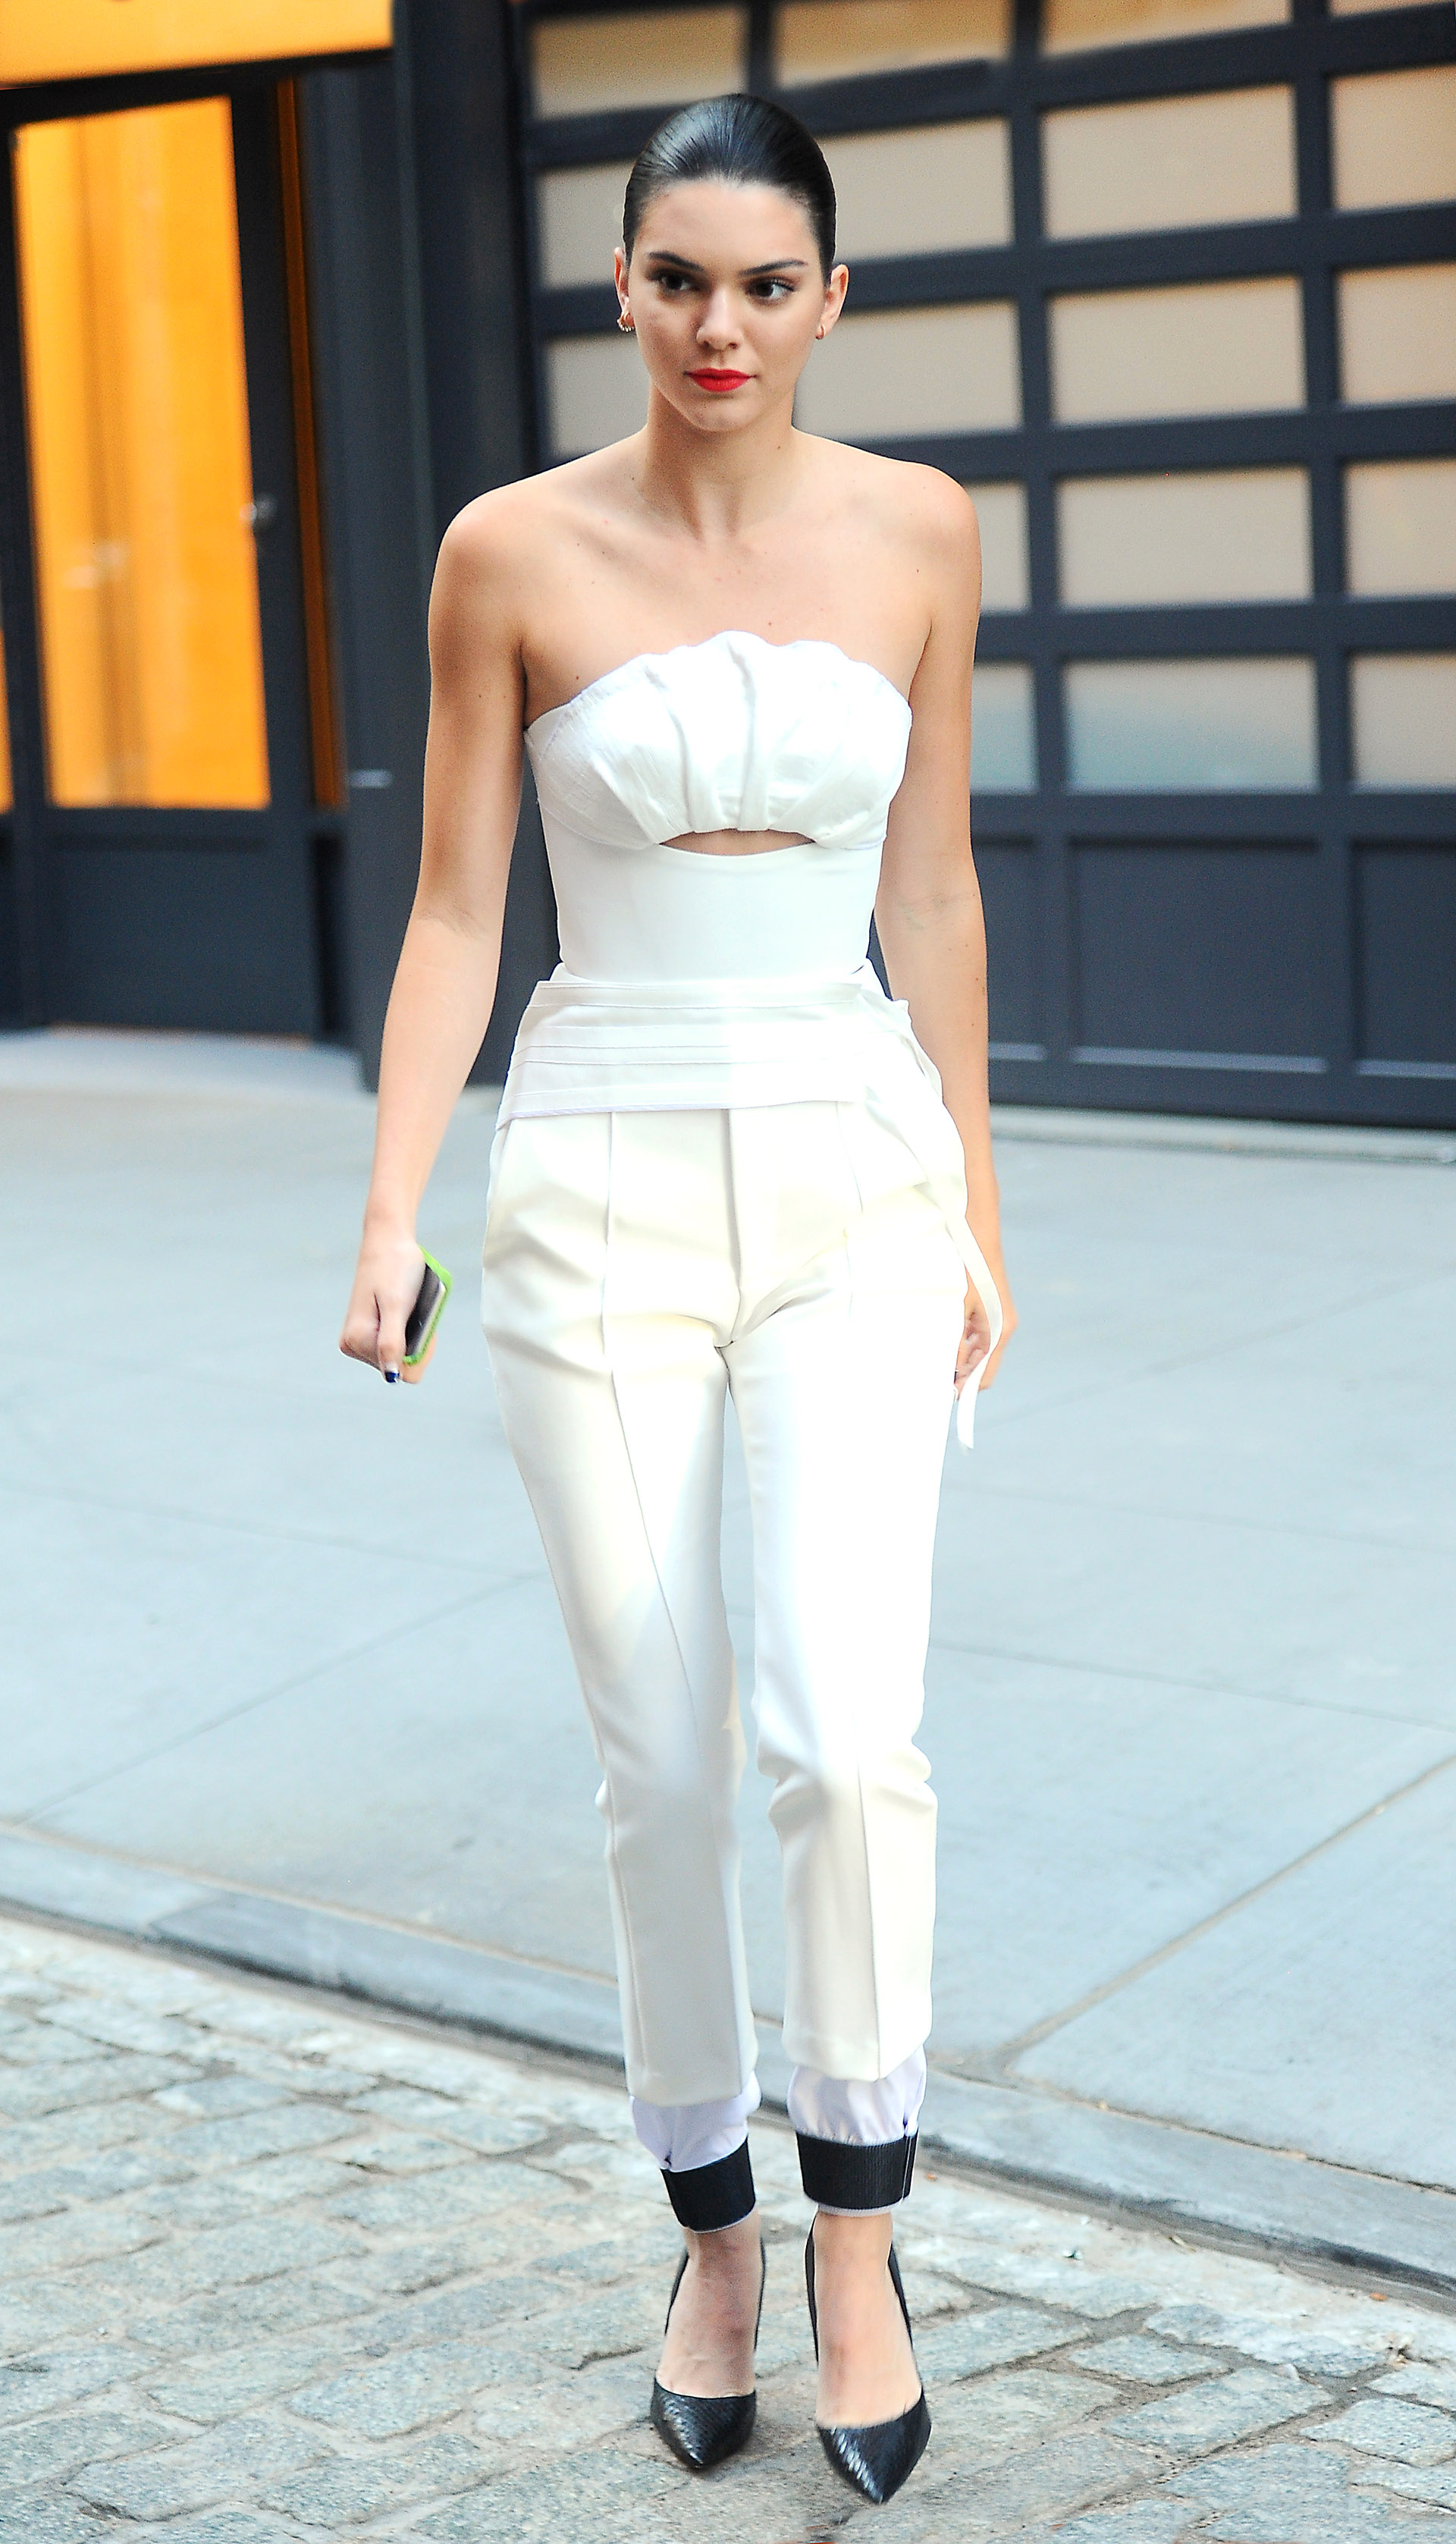 Kendall Jenner looks striking in white as she heads to the Zac Posen fashion show in NYC Pictured: Taylor Swift Ref: SPL1352824  120916   Picture by: JENY / Splash News Splash News and Pictures Los Angeles:310-821-2666 New York:212-619-2666 London:870-934-2666 photodesk@splashnews.com